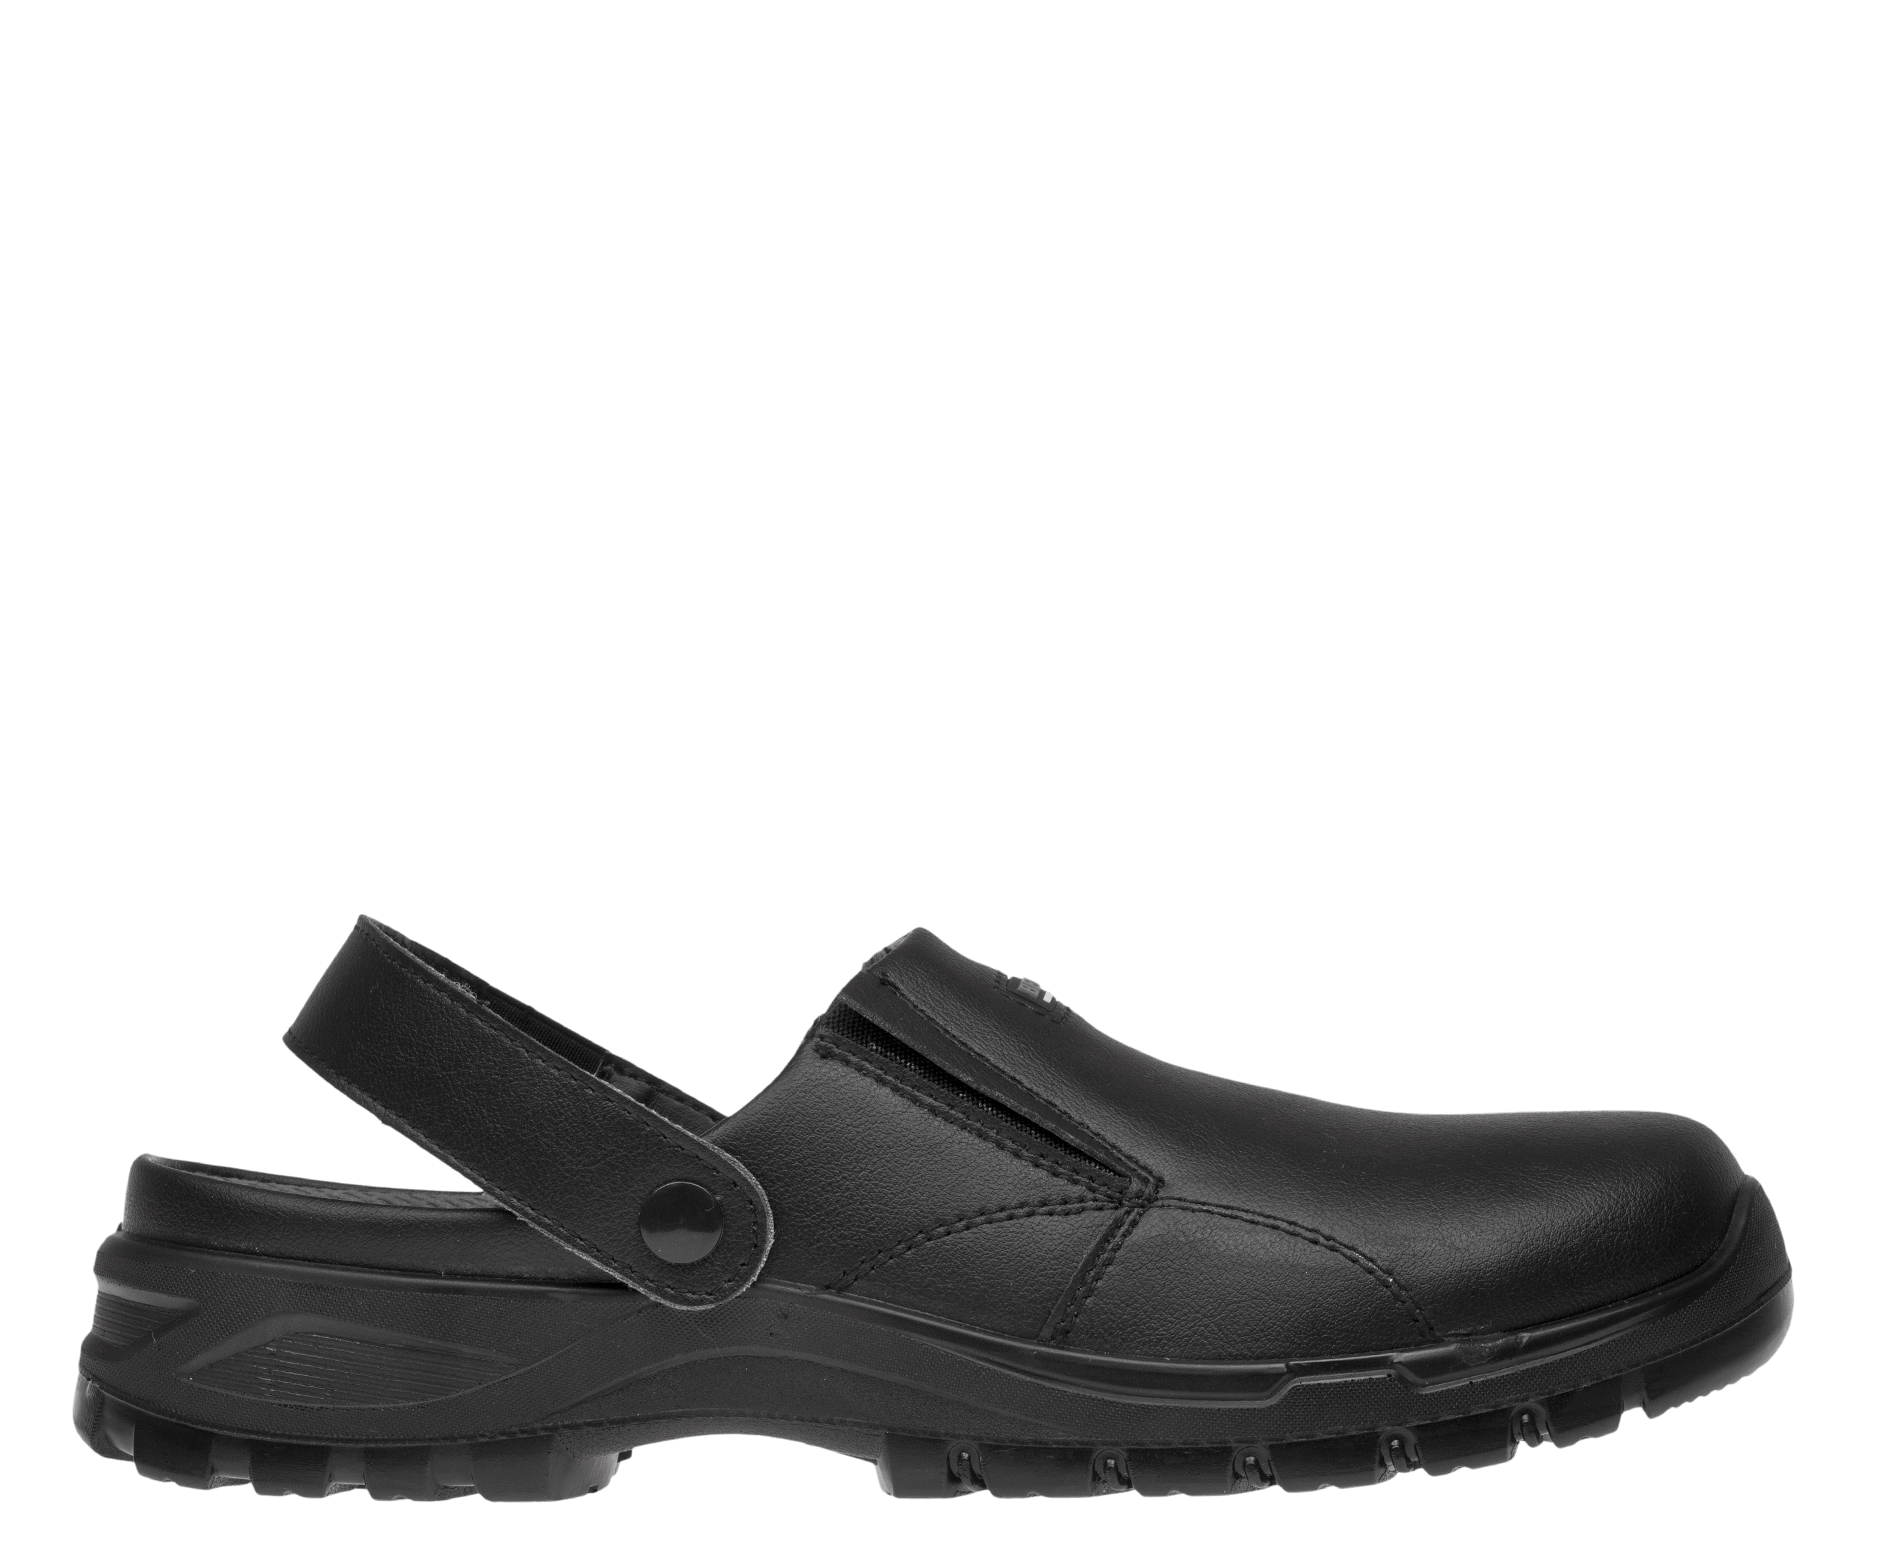 BENNON - BNN BLACK OB SLIPPER